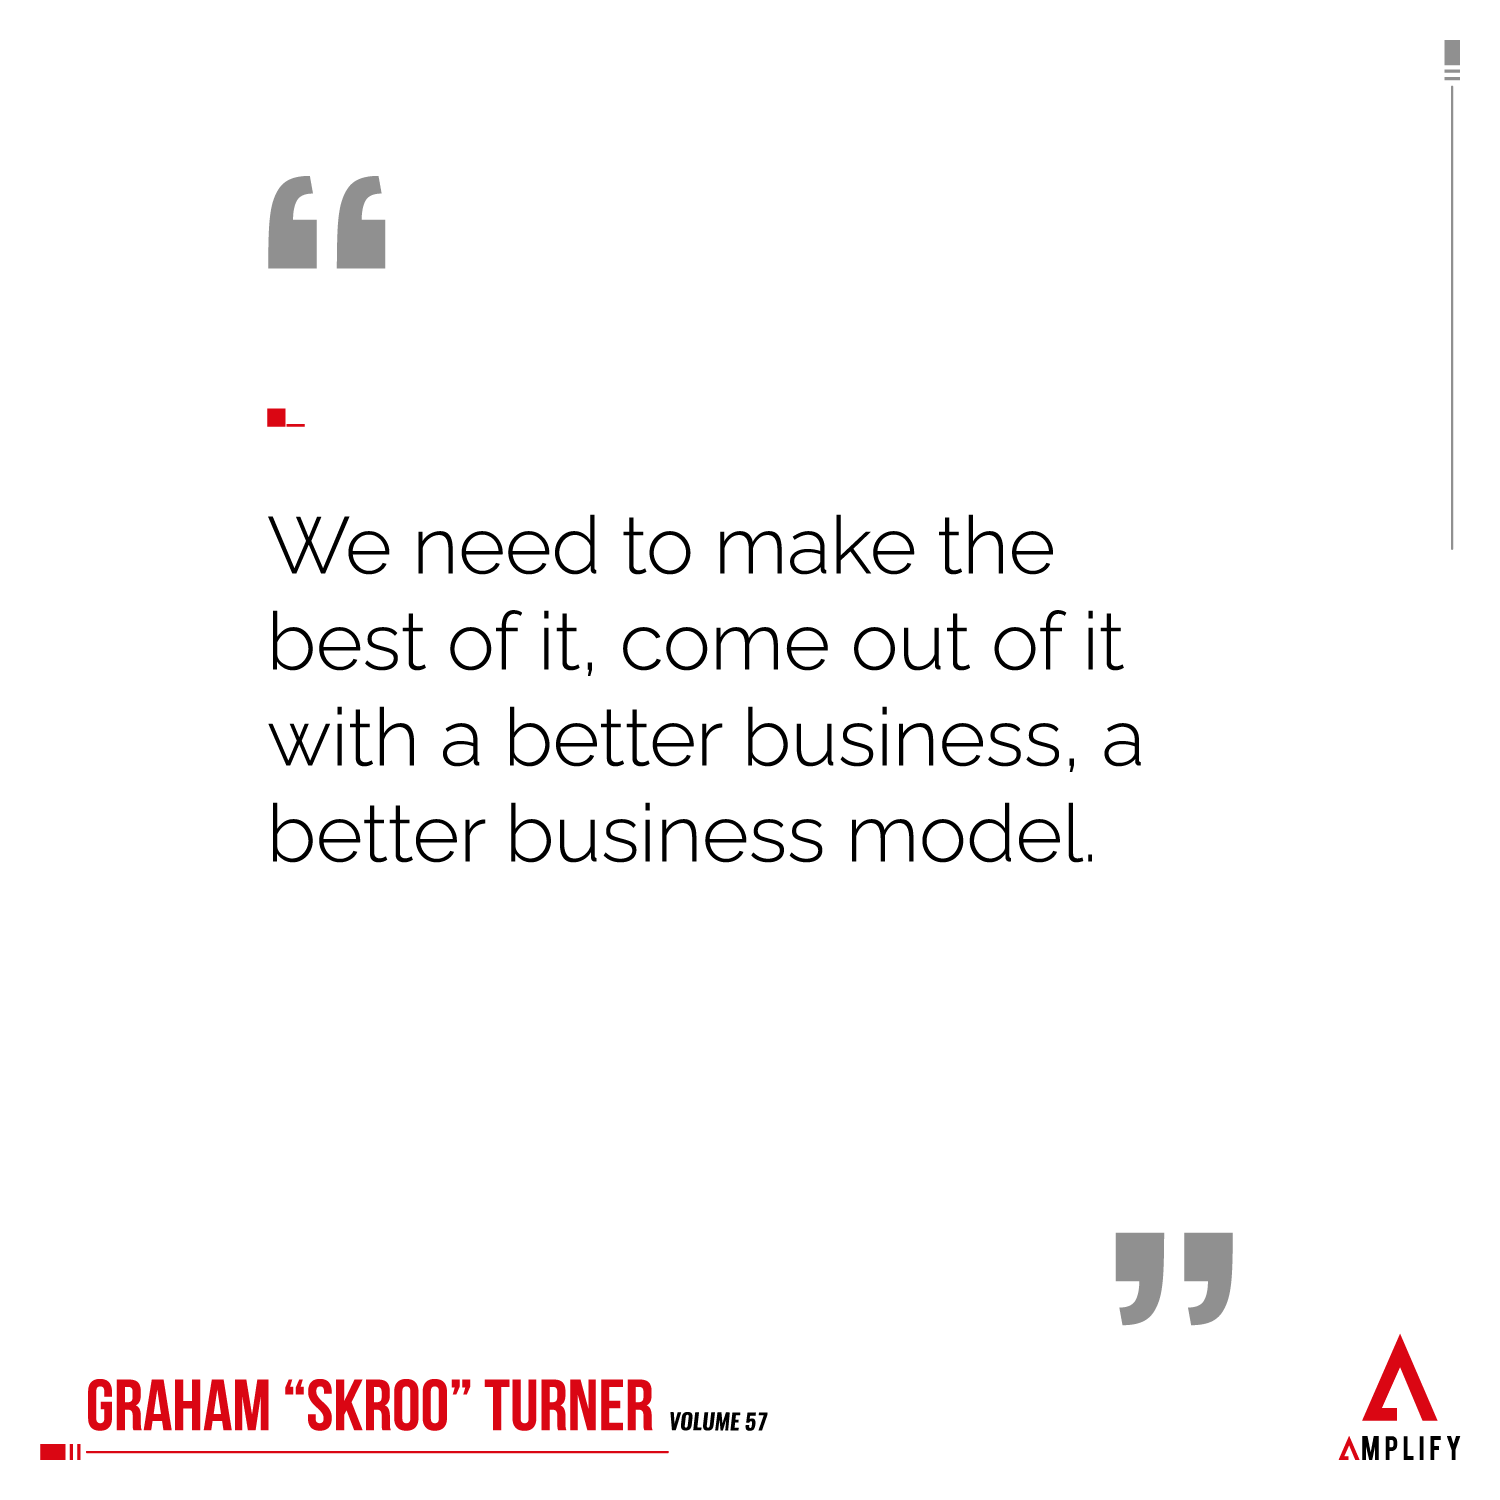 Quote: We need to make the best of it, come out of it with a better business, a better business model.